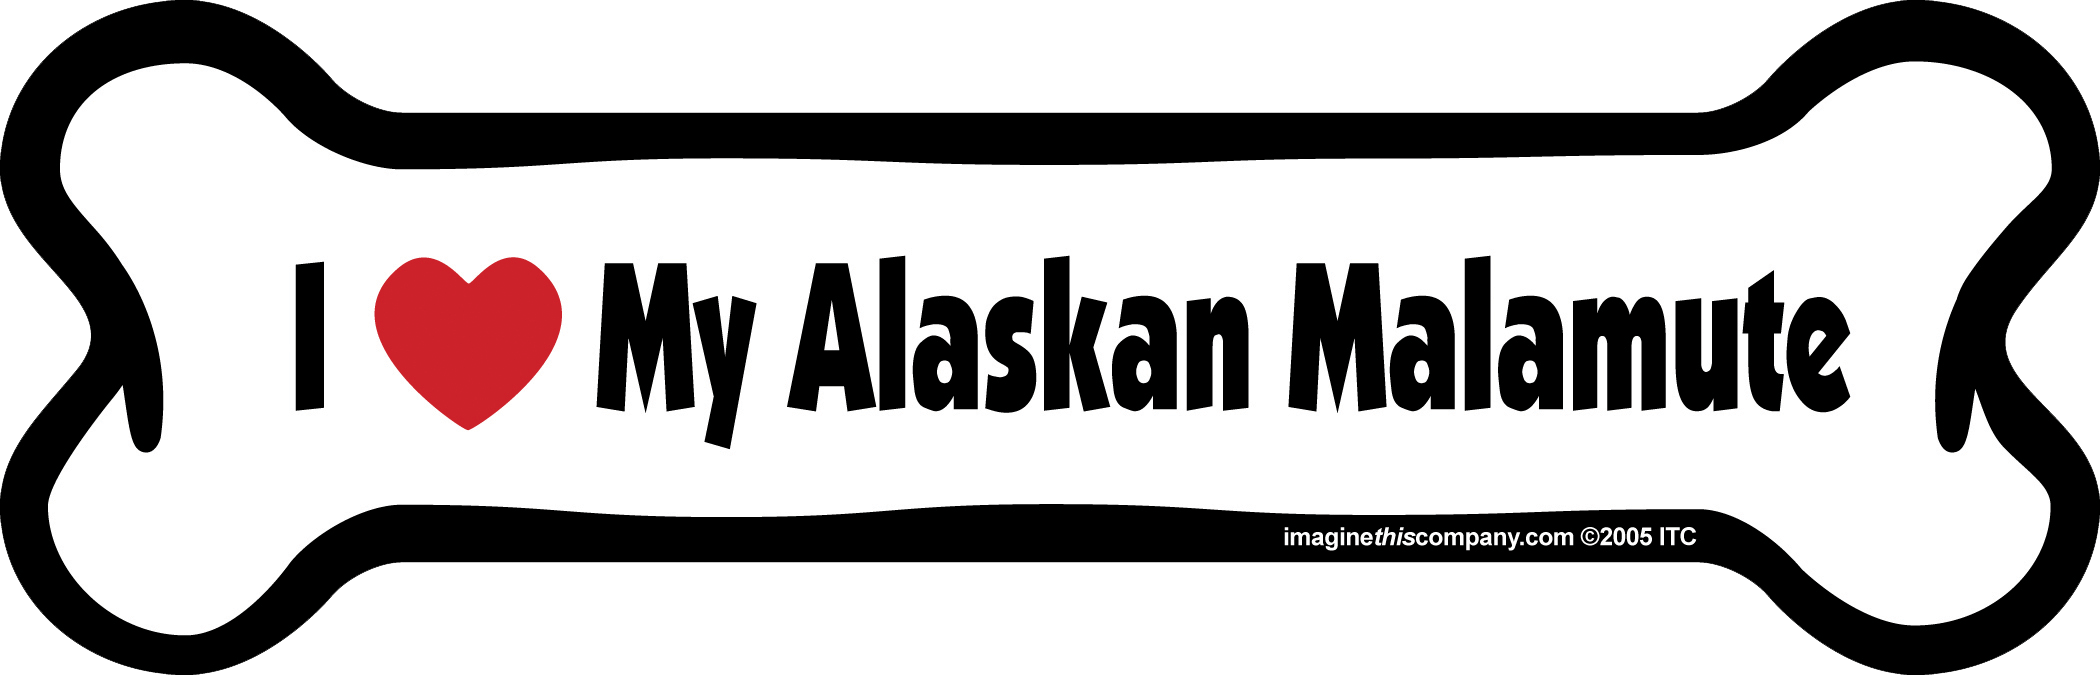 Magnet-Love Alaskan Mal SO